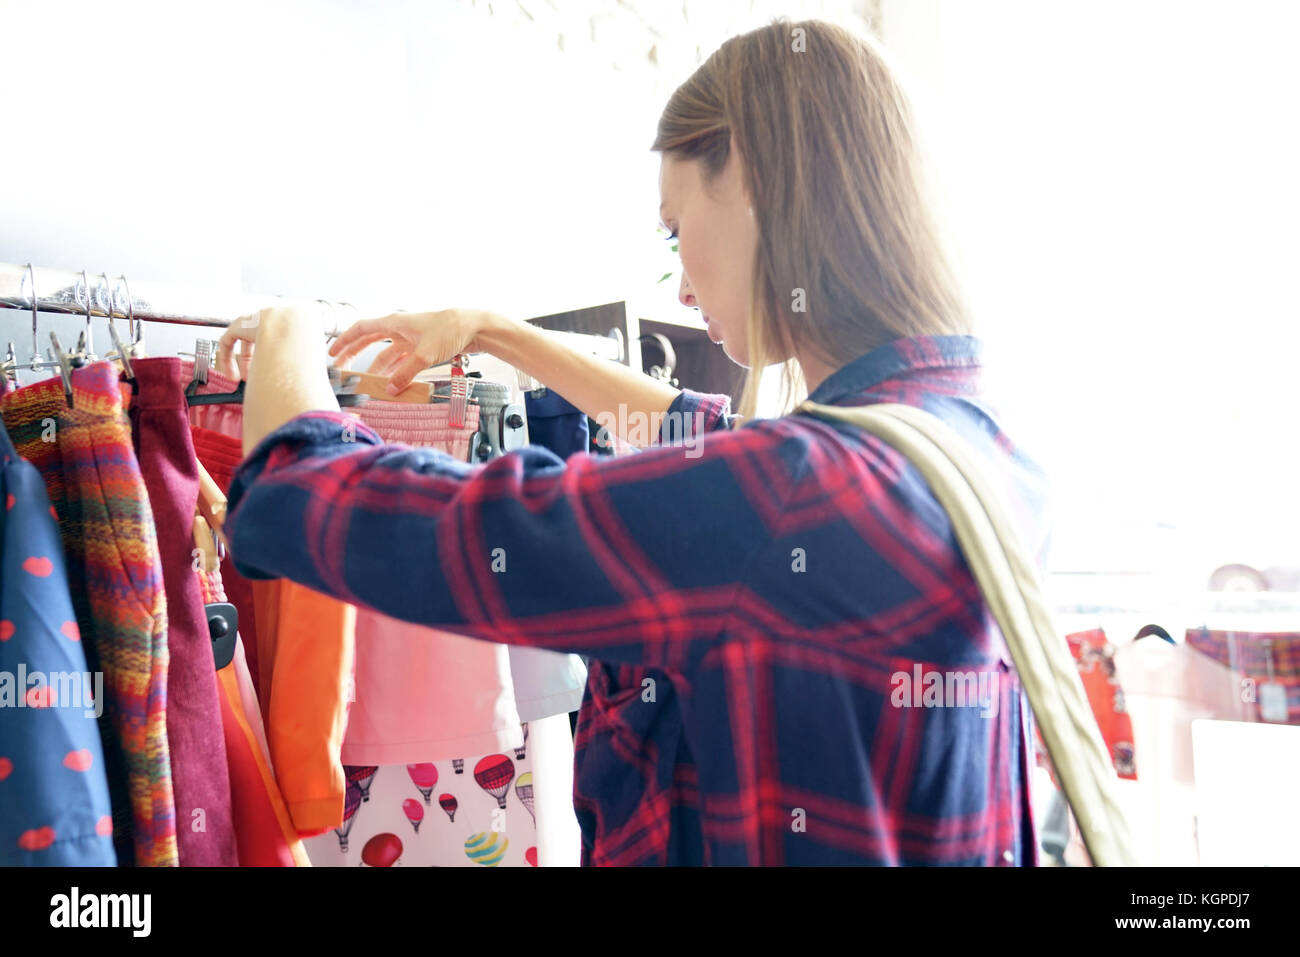 Femme dans magasin de vêtements, jour de shopping Photo Stock